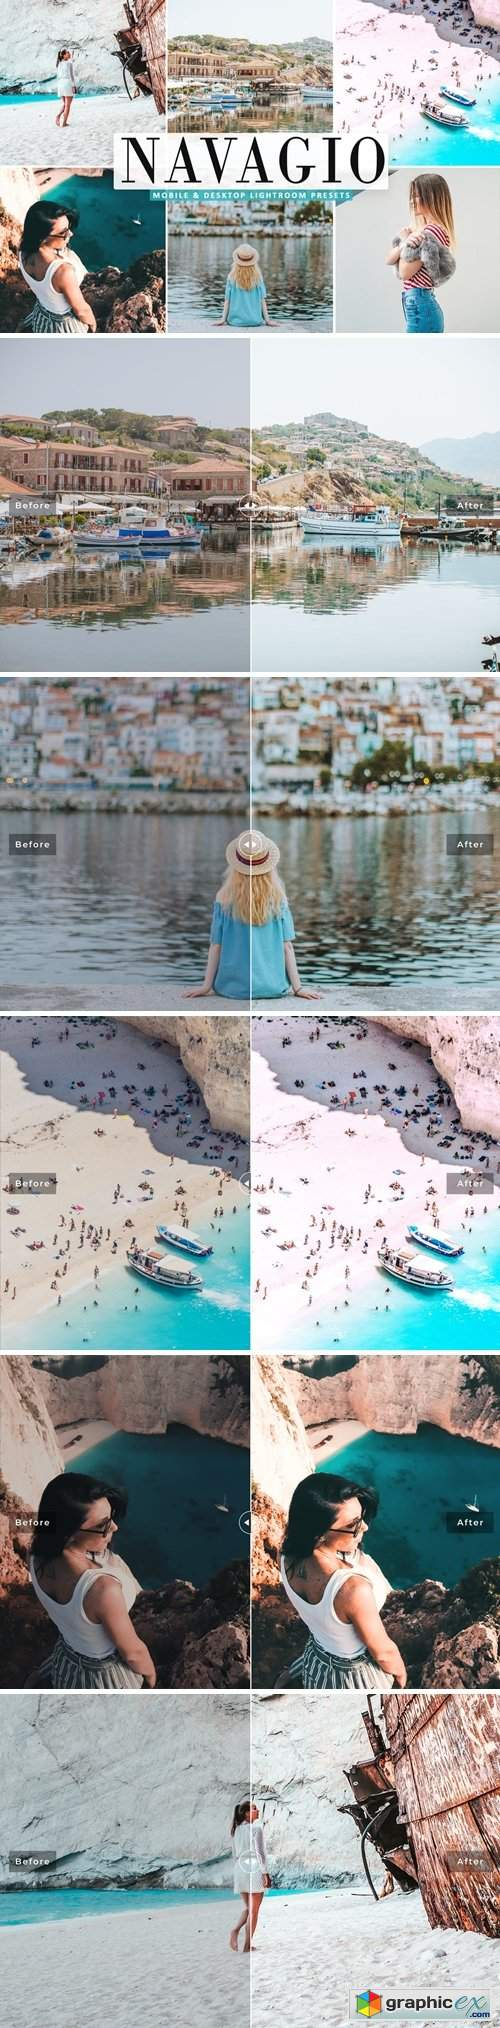 Navagio Mobile & Desktop Lightroom Presets